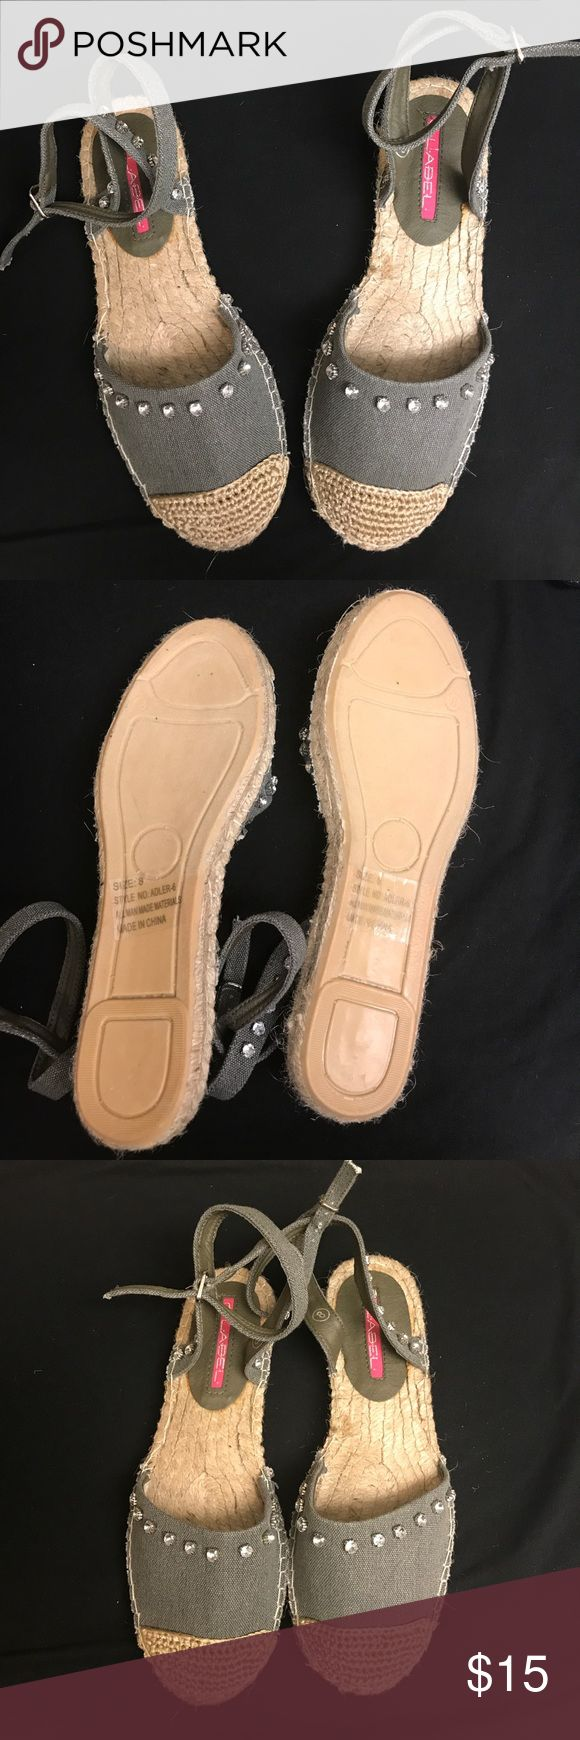 Grey espadrille Cute espadrille sandals with silver rhinestones in the straps and in front. Number 8 Shoes Espadrilles